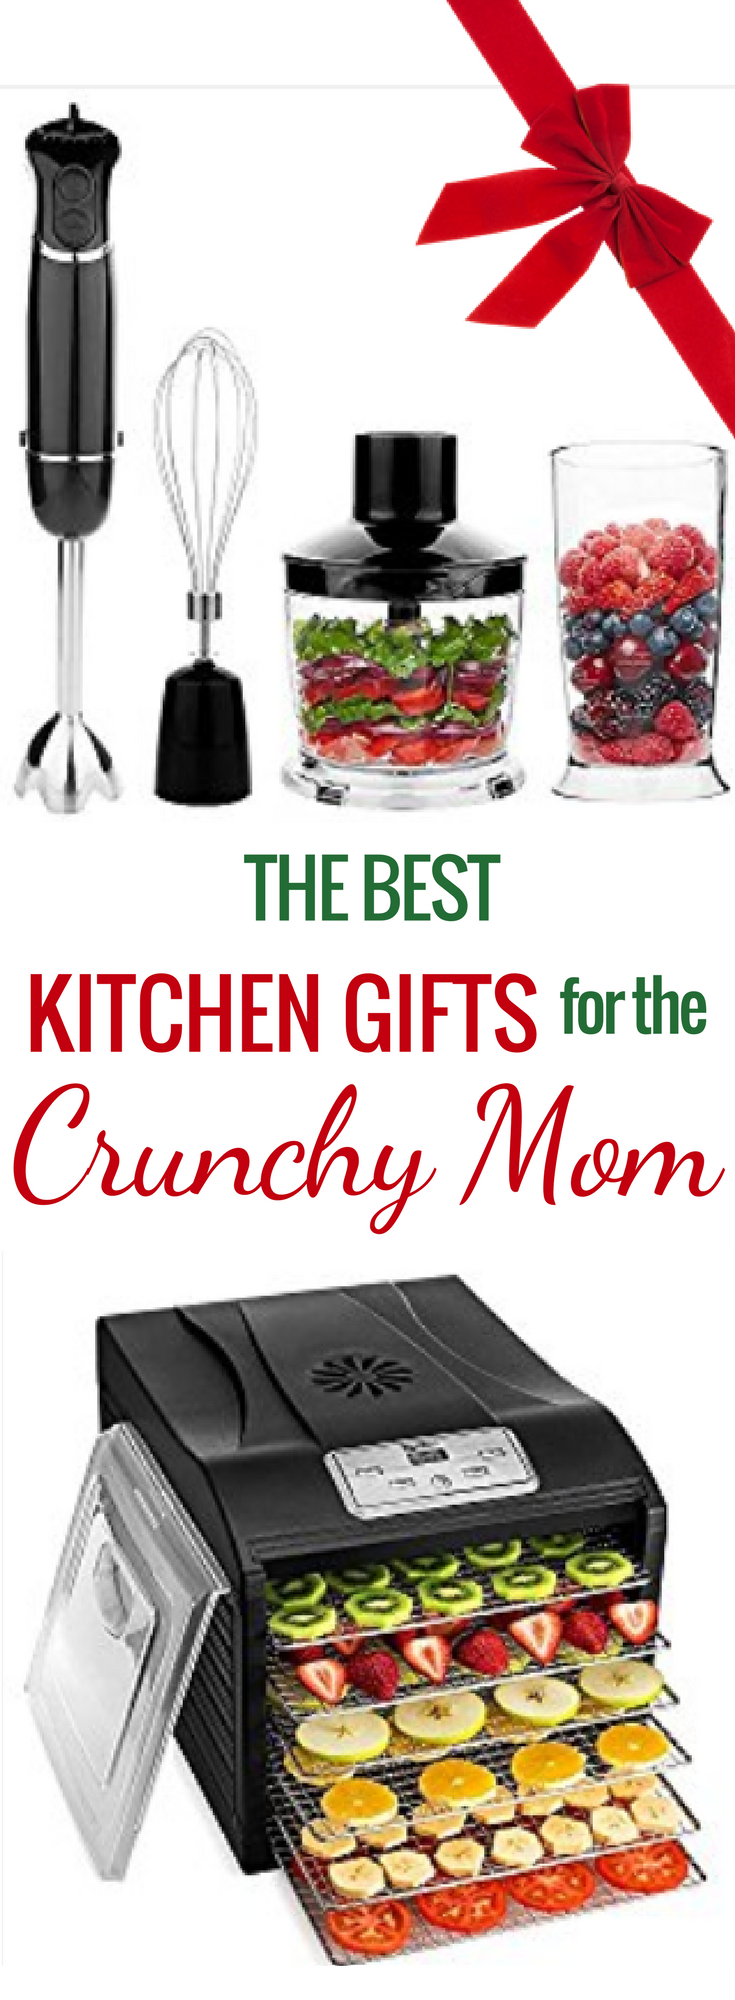 Best Kitchen Gifts For Crunchy Moms | The BEST Gift Ideas For Everyone On  Your List | Pinterest | Organic, Kitchens And Gift